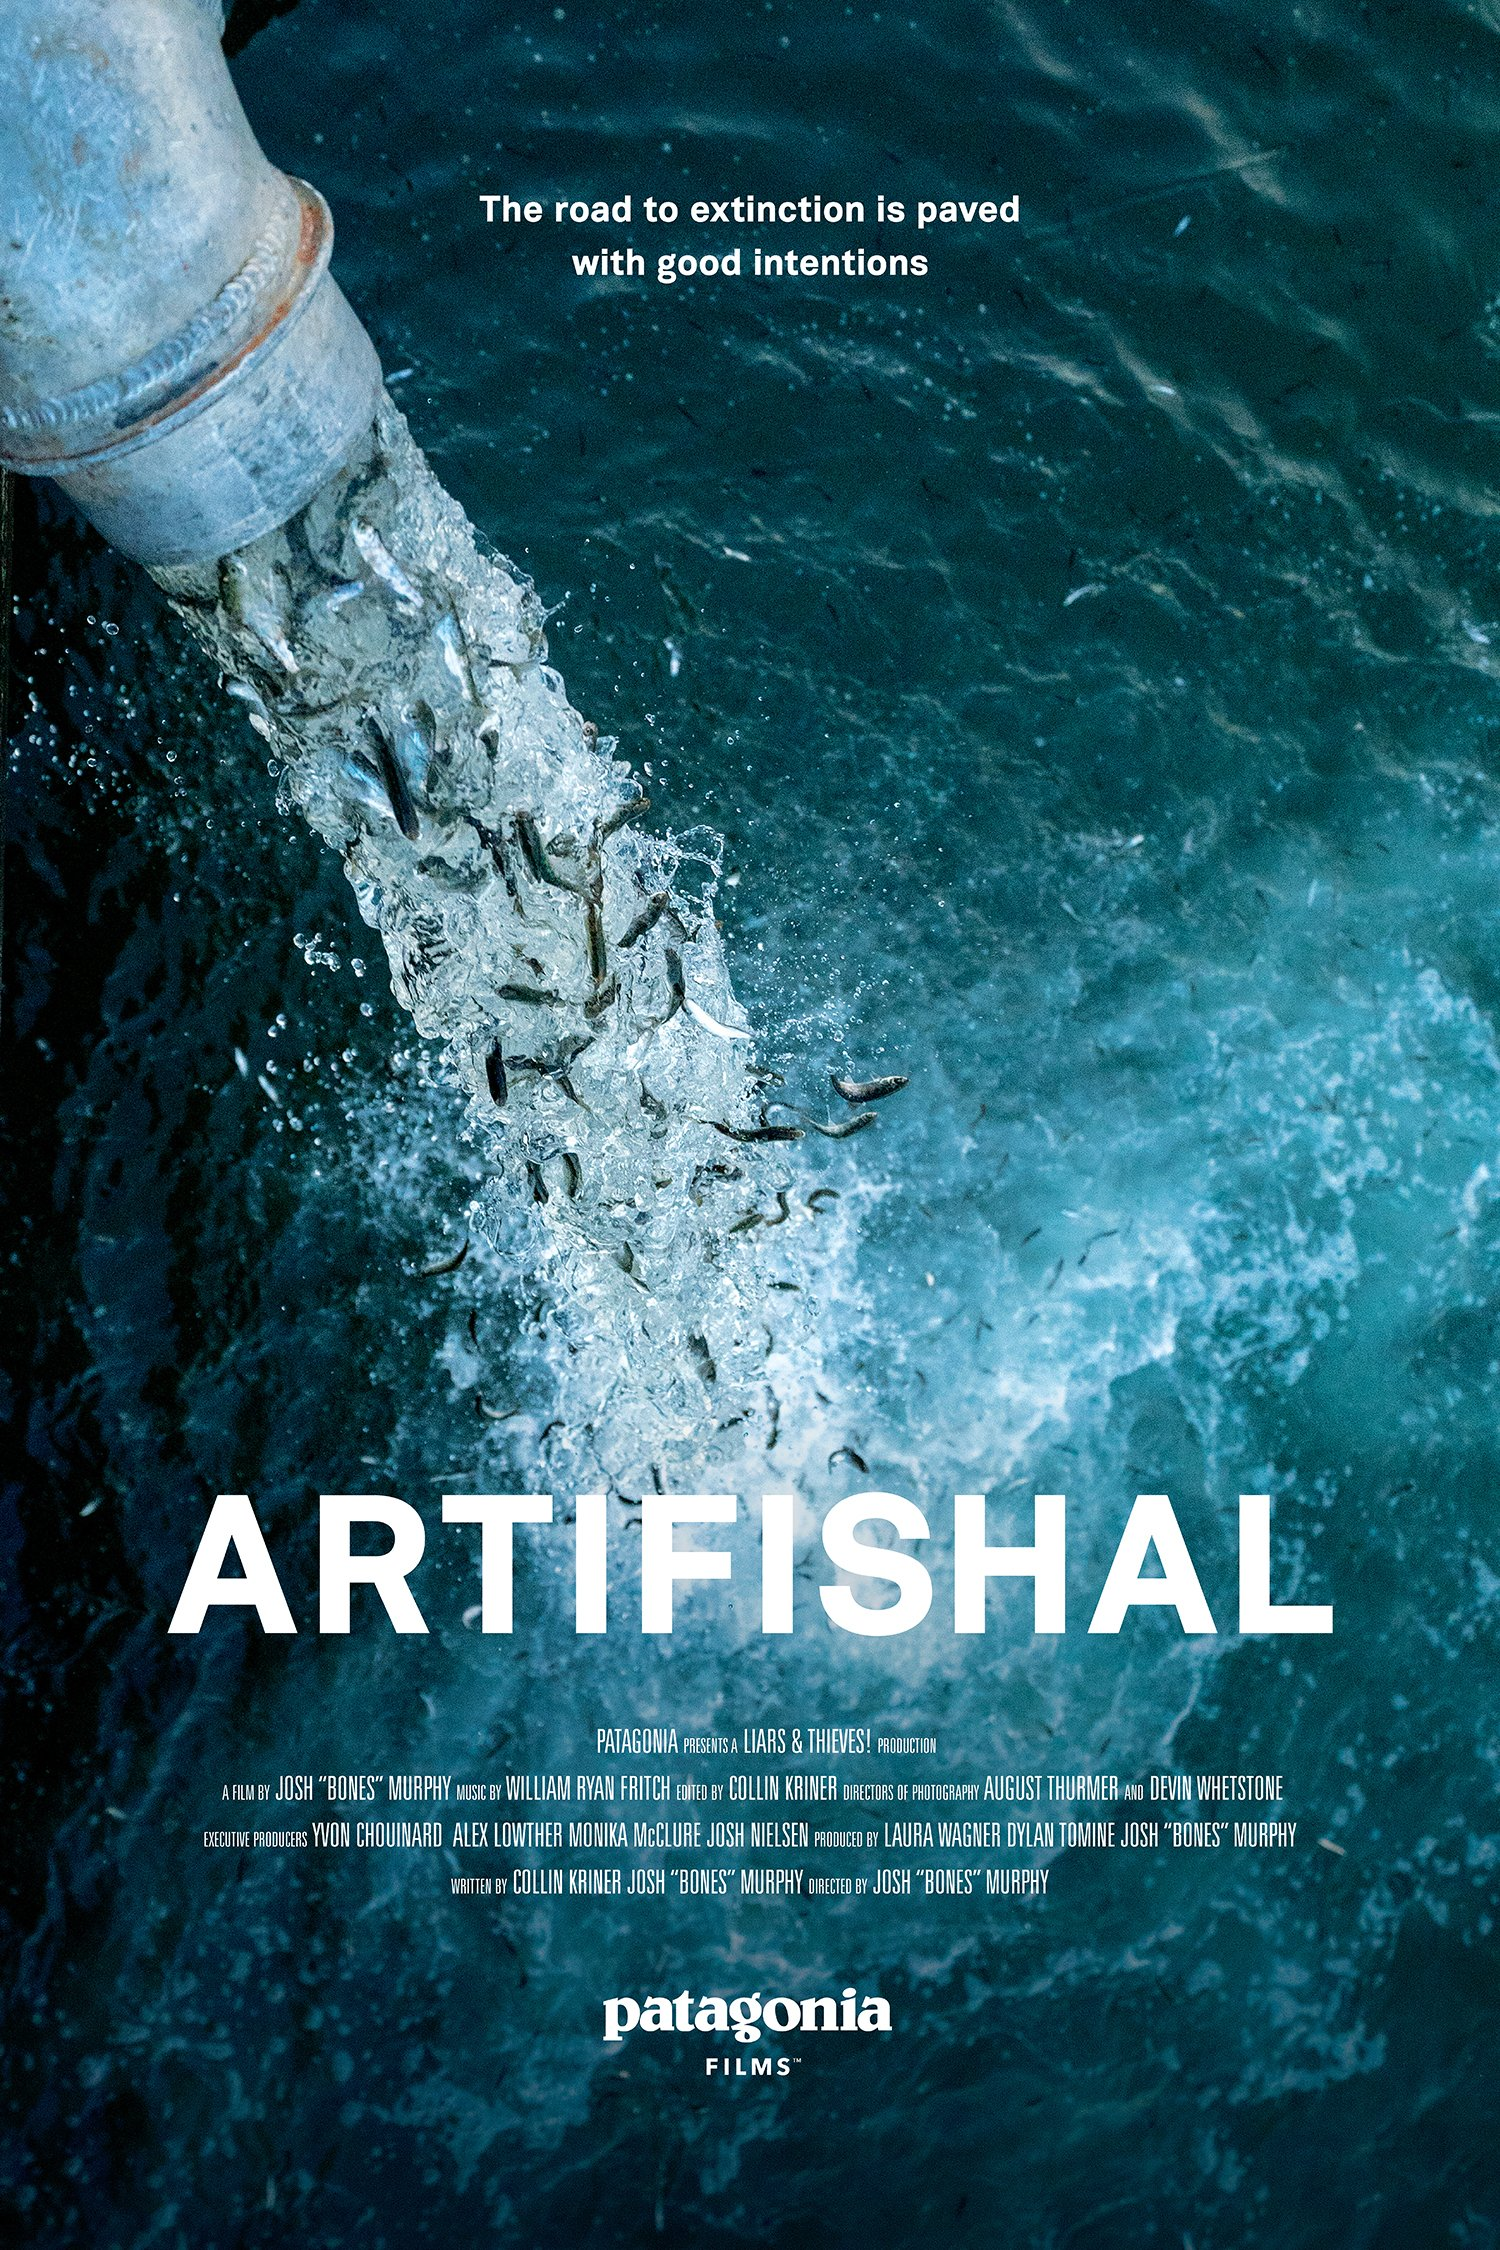 Thumbnail for ARTIFISHAL: The Fight to Save Wild Salmon